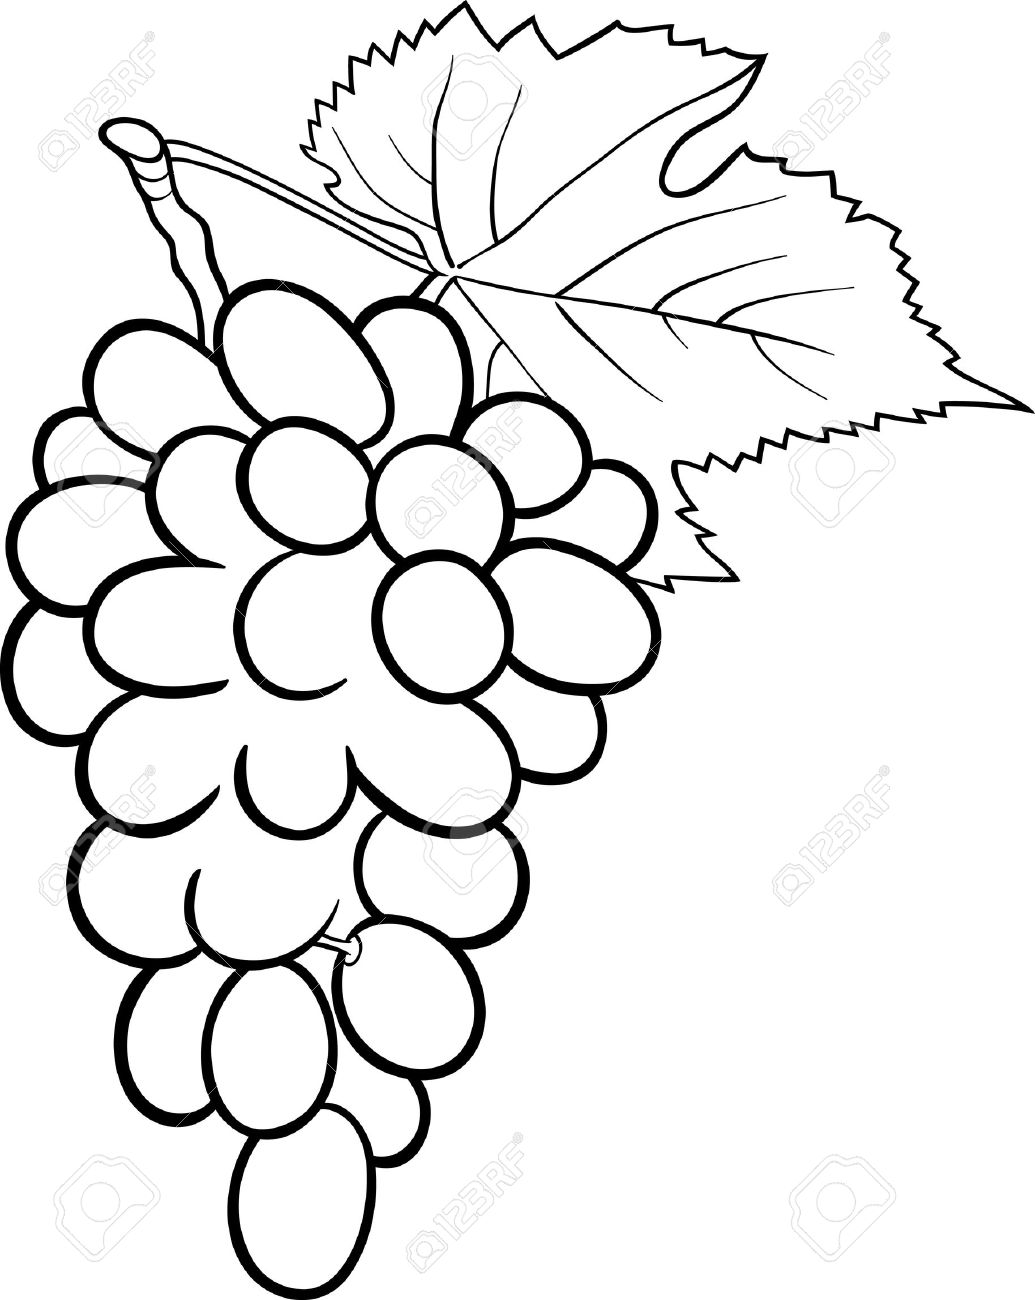 Black and White Cartoon Illustration of Bunch of Grapes or Grapevine...